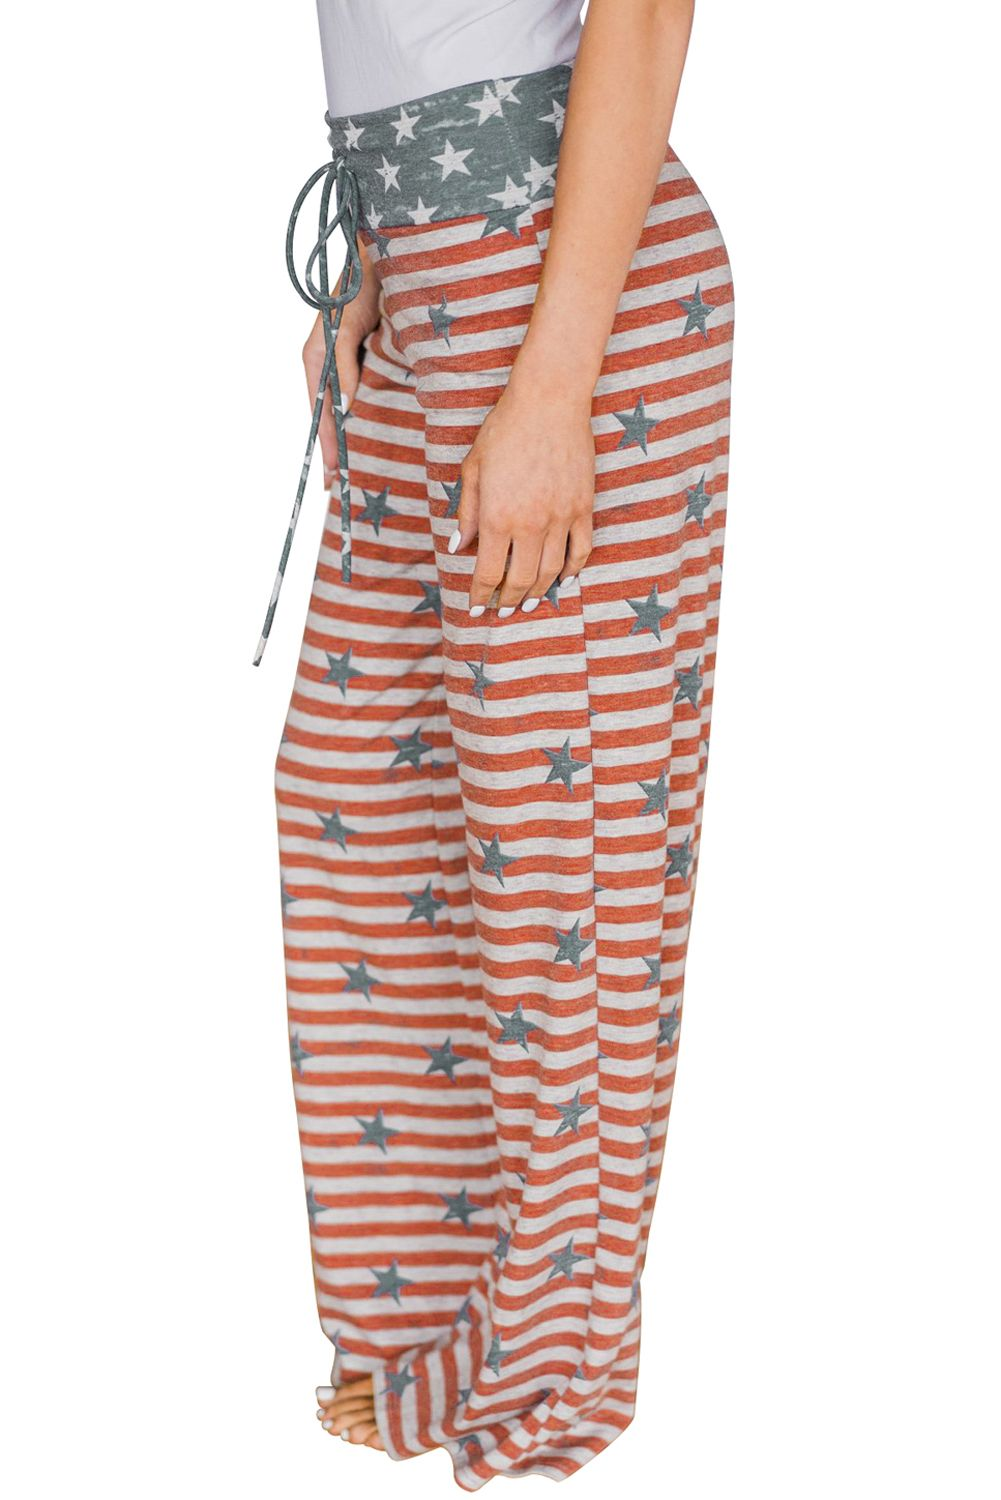 Closecret The American Dream Striped Lounge Pants •Tie up bust ...